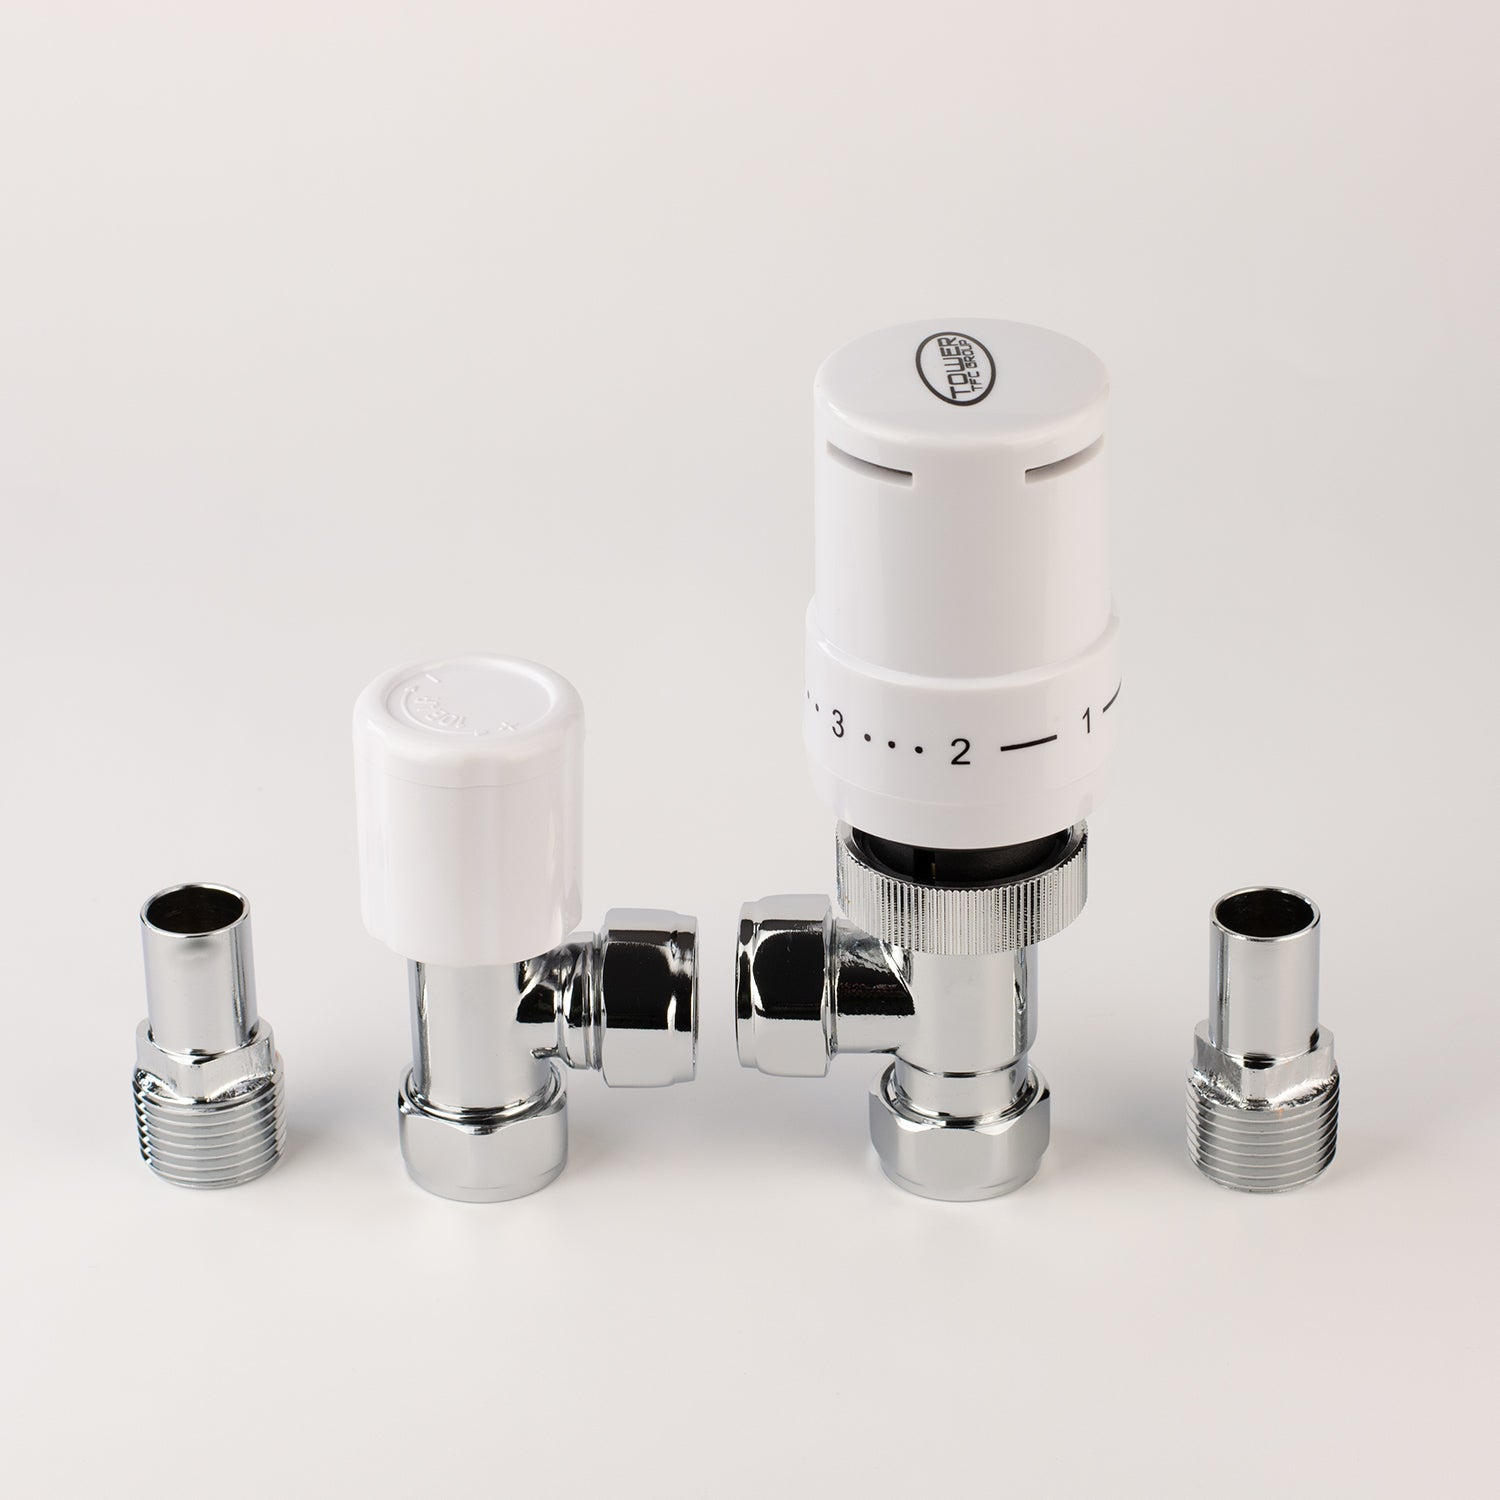 White Thermostatic TRV Angled Valve For Heated Towel Rail Radiator With Lockshield